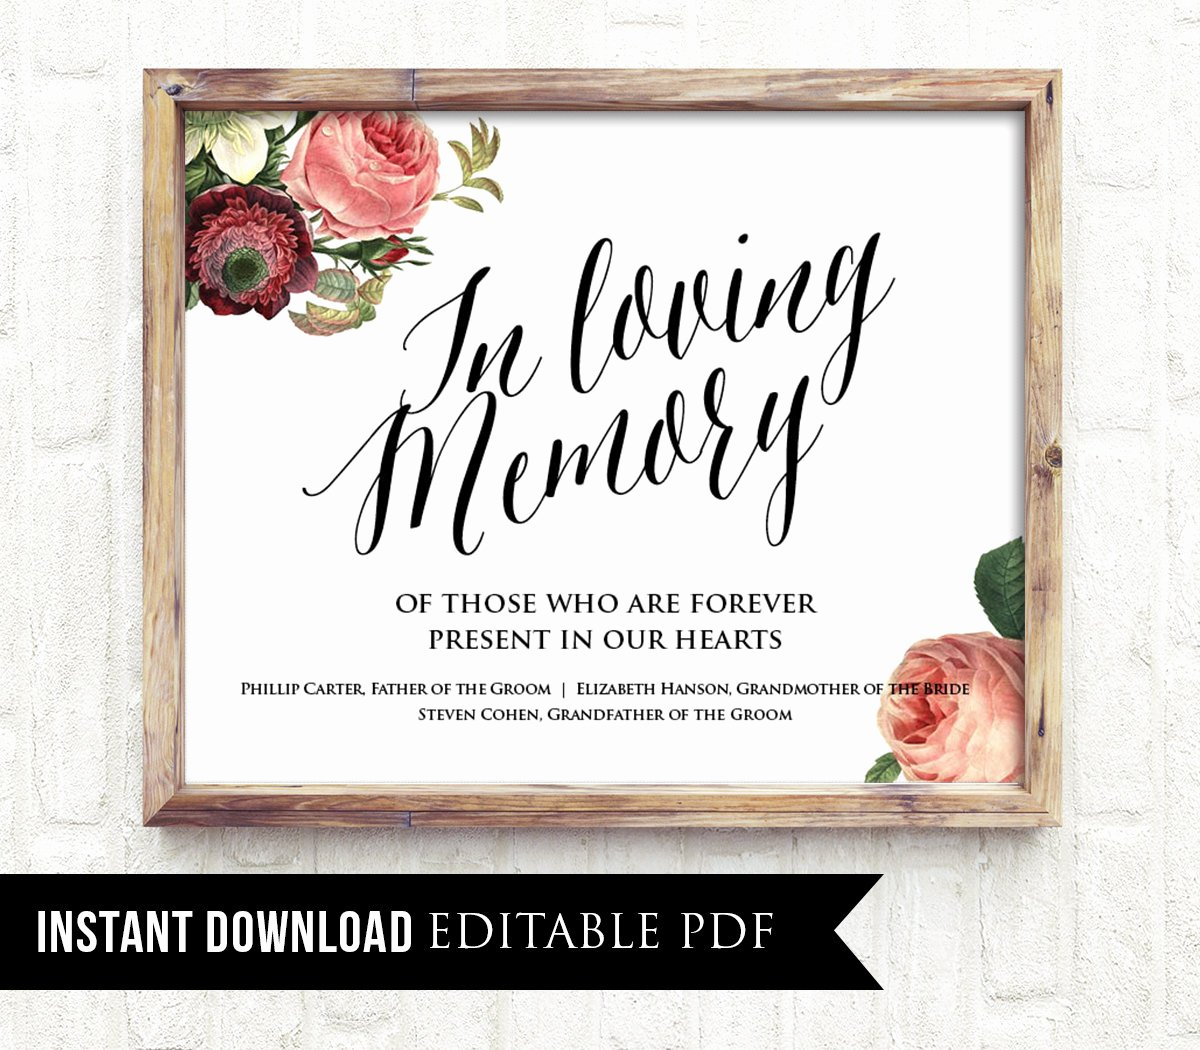 In Loving Memory Card Template Beautiful F In Loving Memory Wedding Sign Template Editable